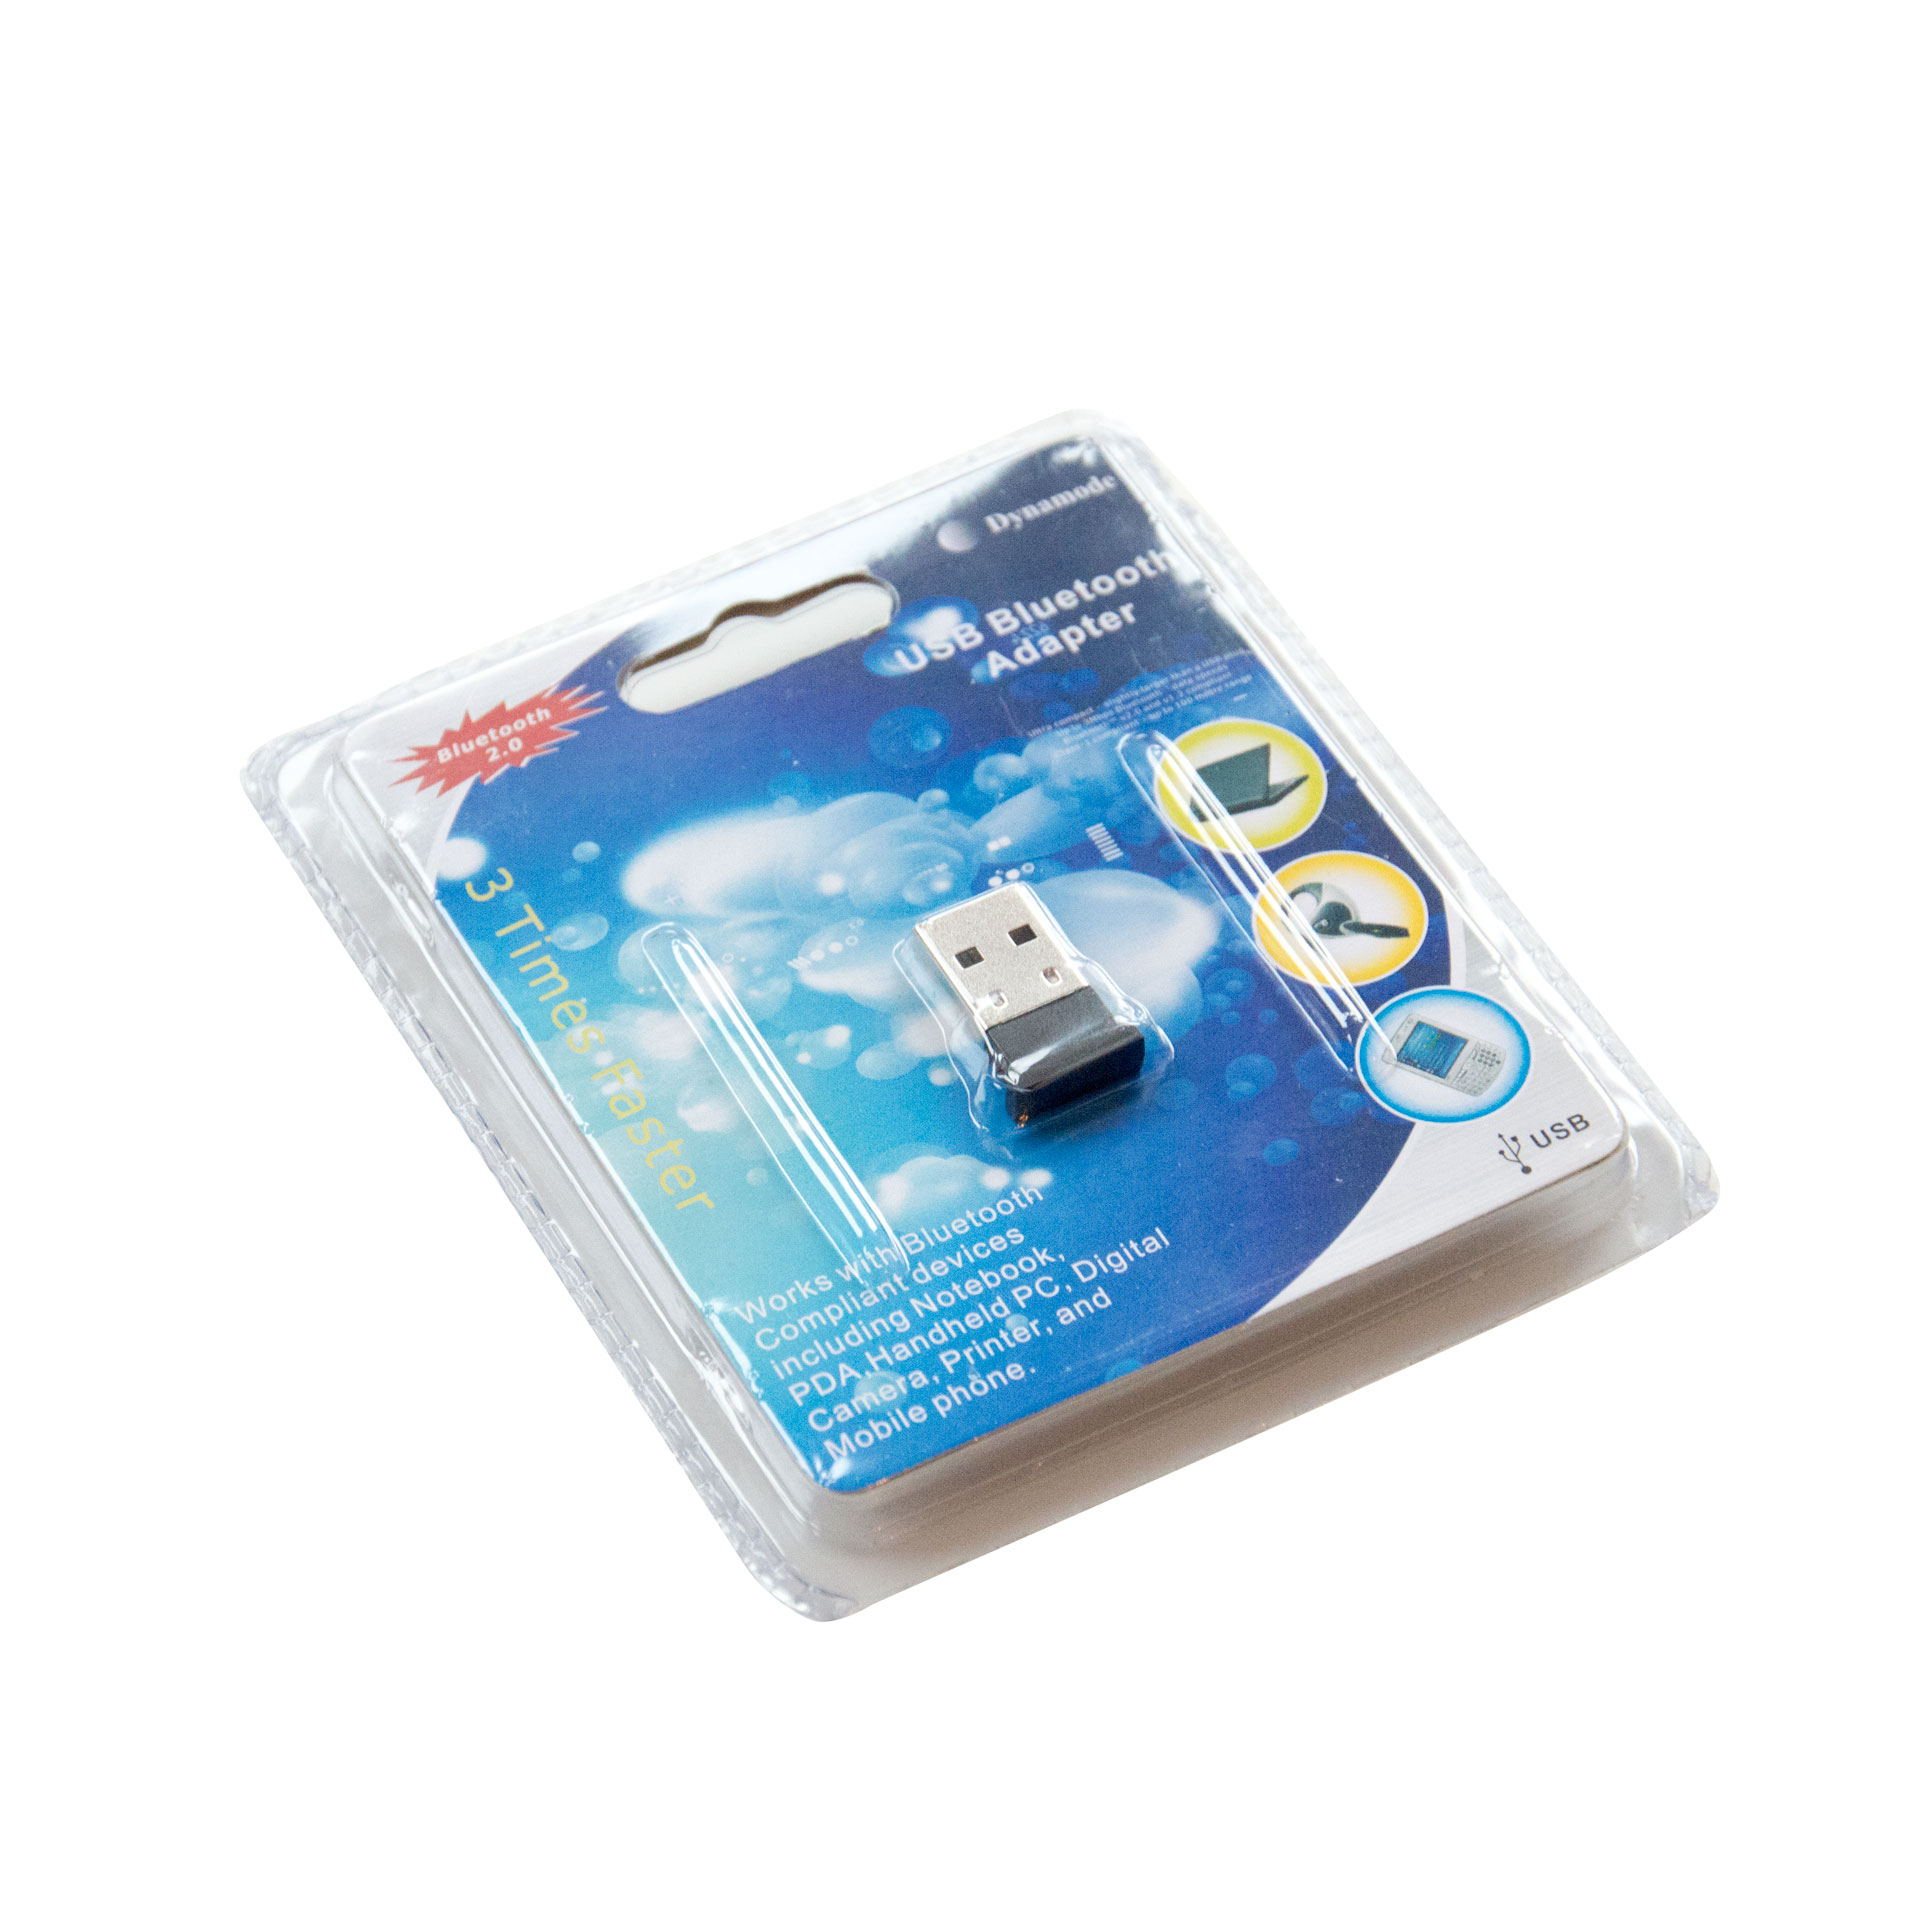 Micro Bluetooth Adapter Usb 20 3mbps Windows 7 8 Linux Lisconet Dongle V20 1